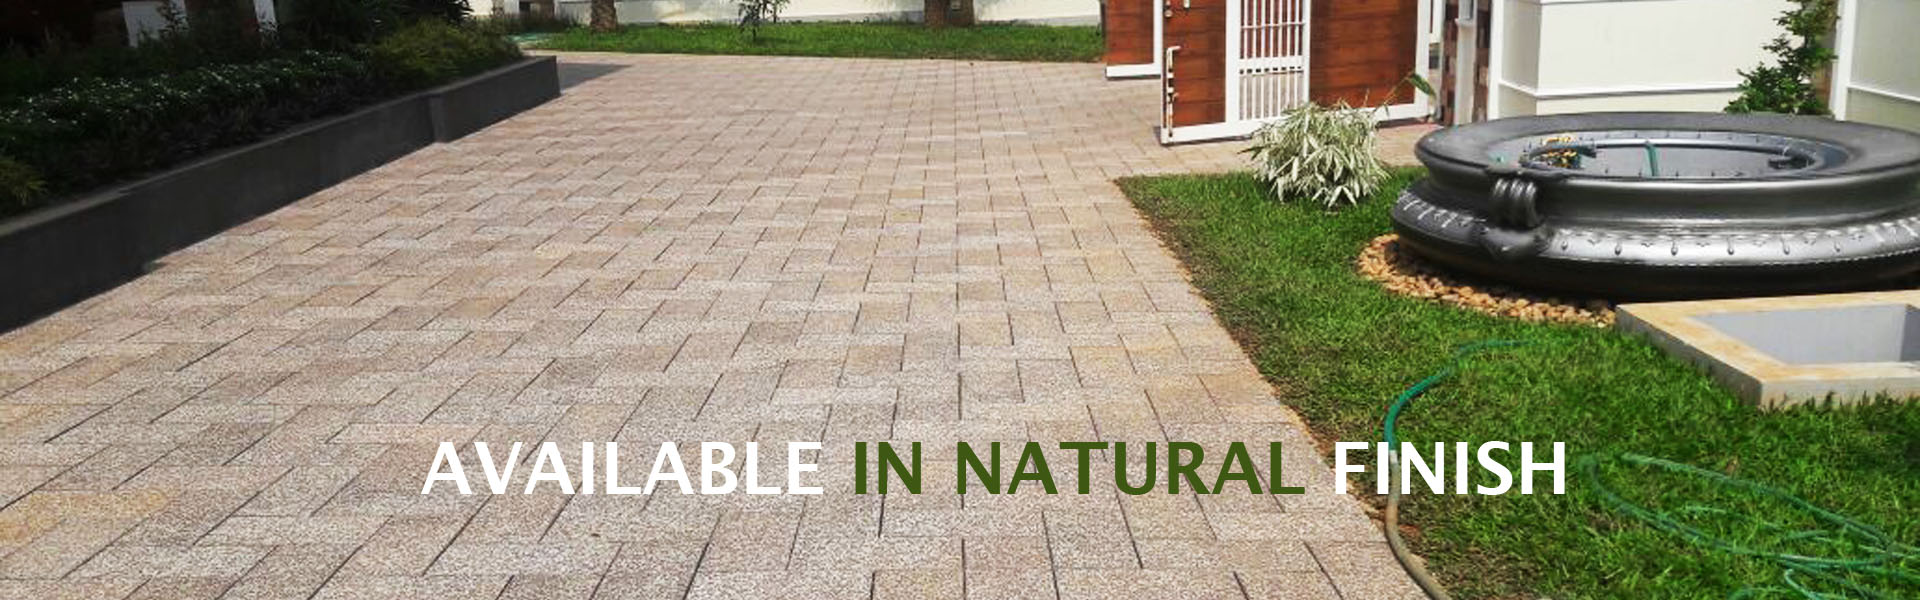 Garden Paving Tiles Kerala Garden Design Works In Kollam